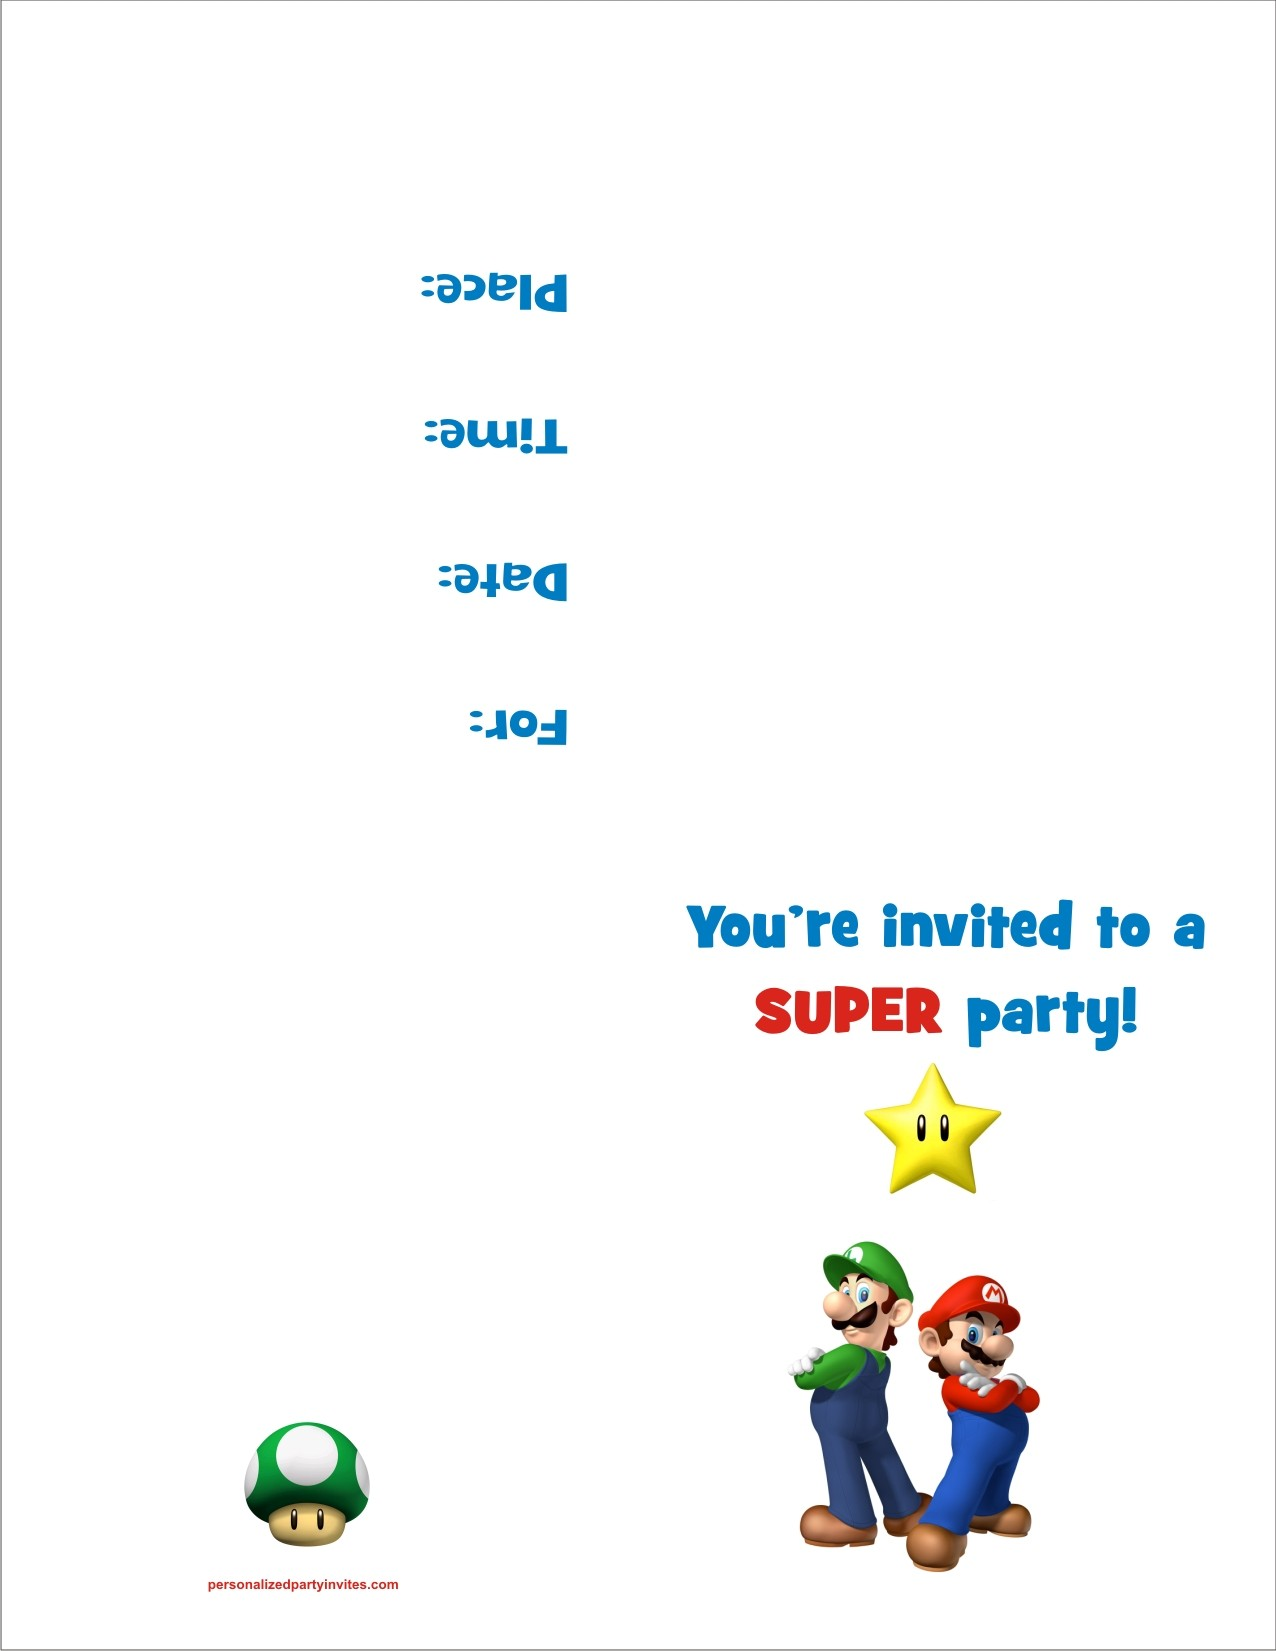 Super mario bros free printable birthday party invitation super mario bros free printable birthday party invitation filmwisefo